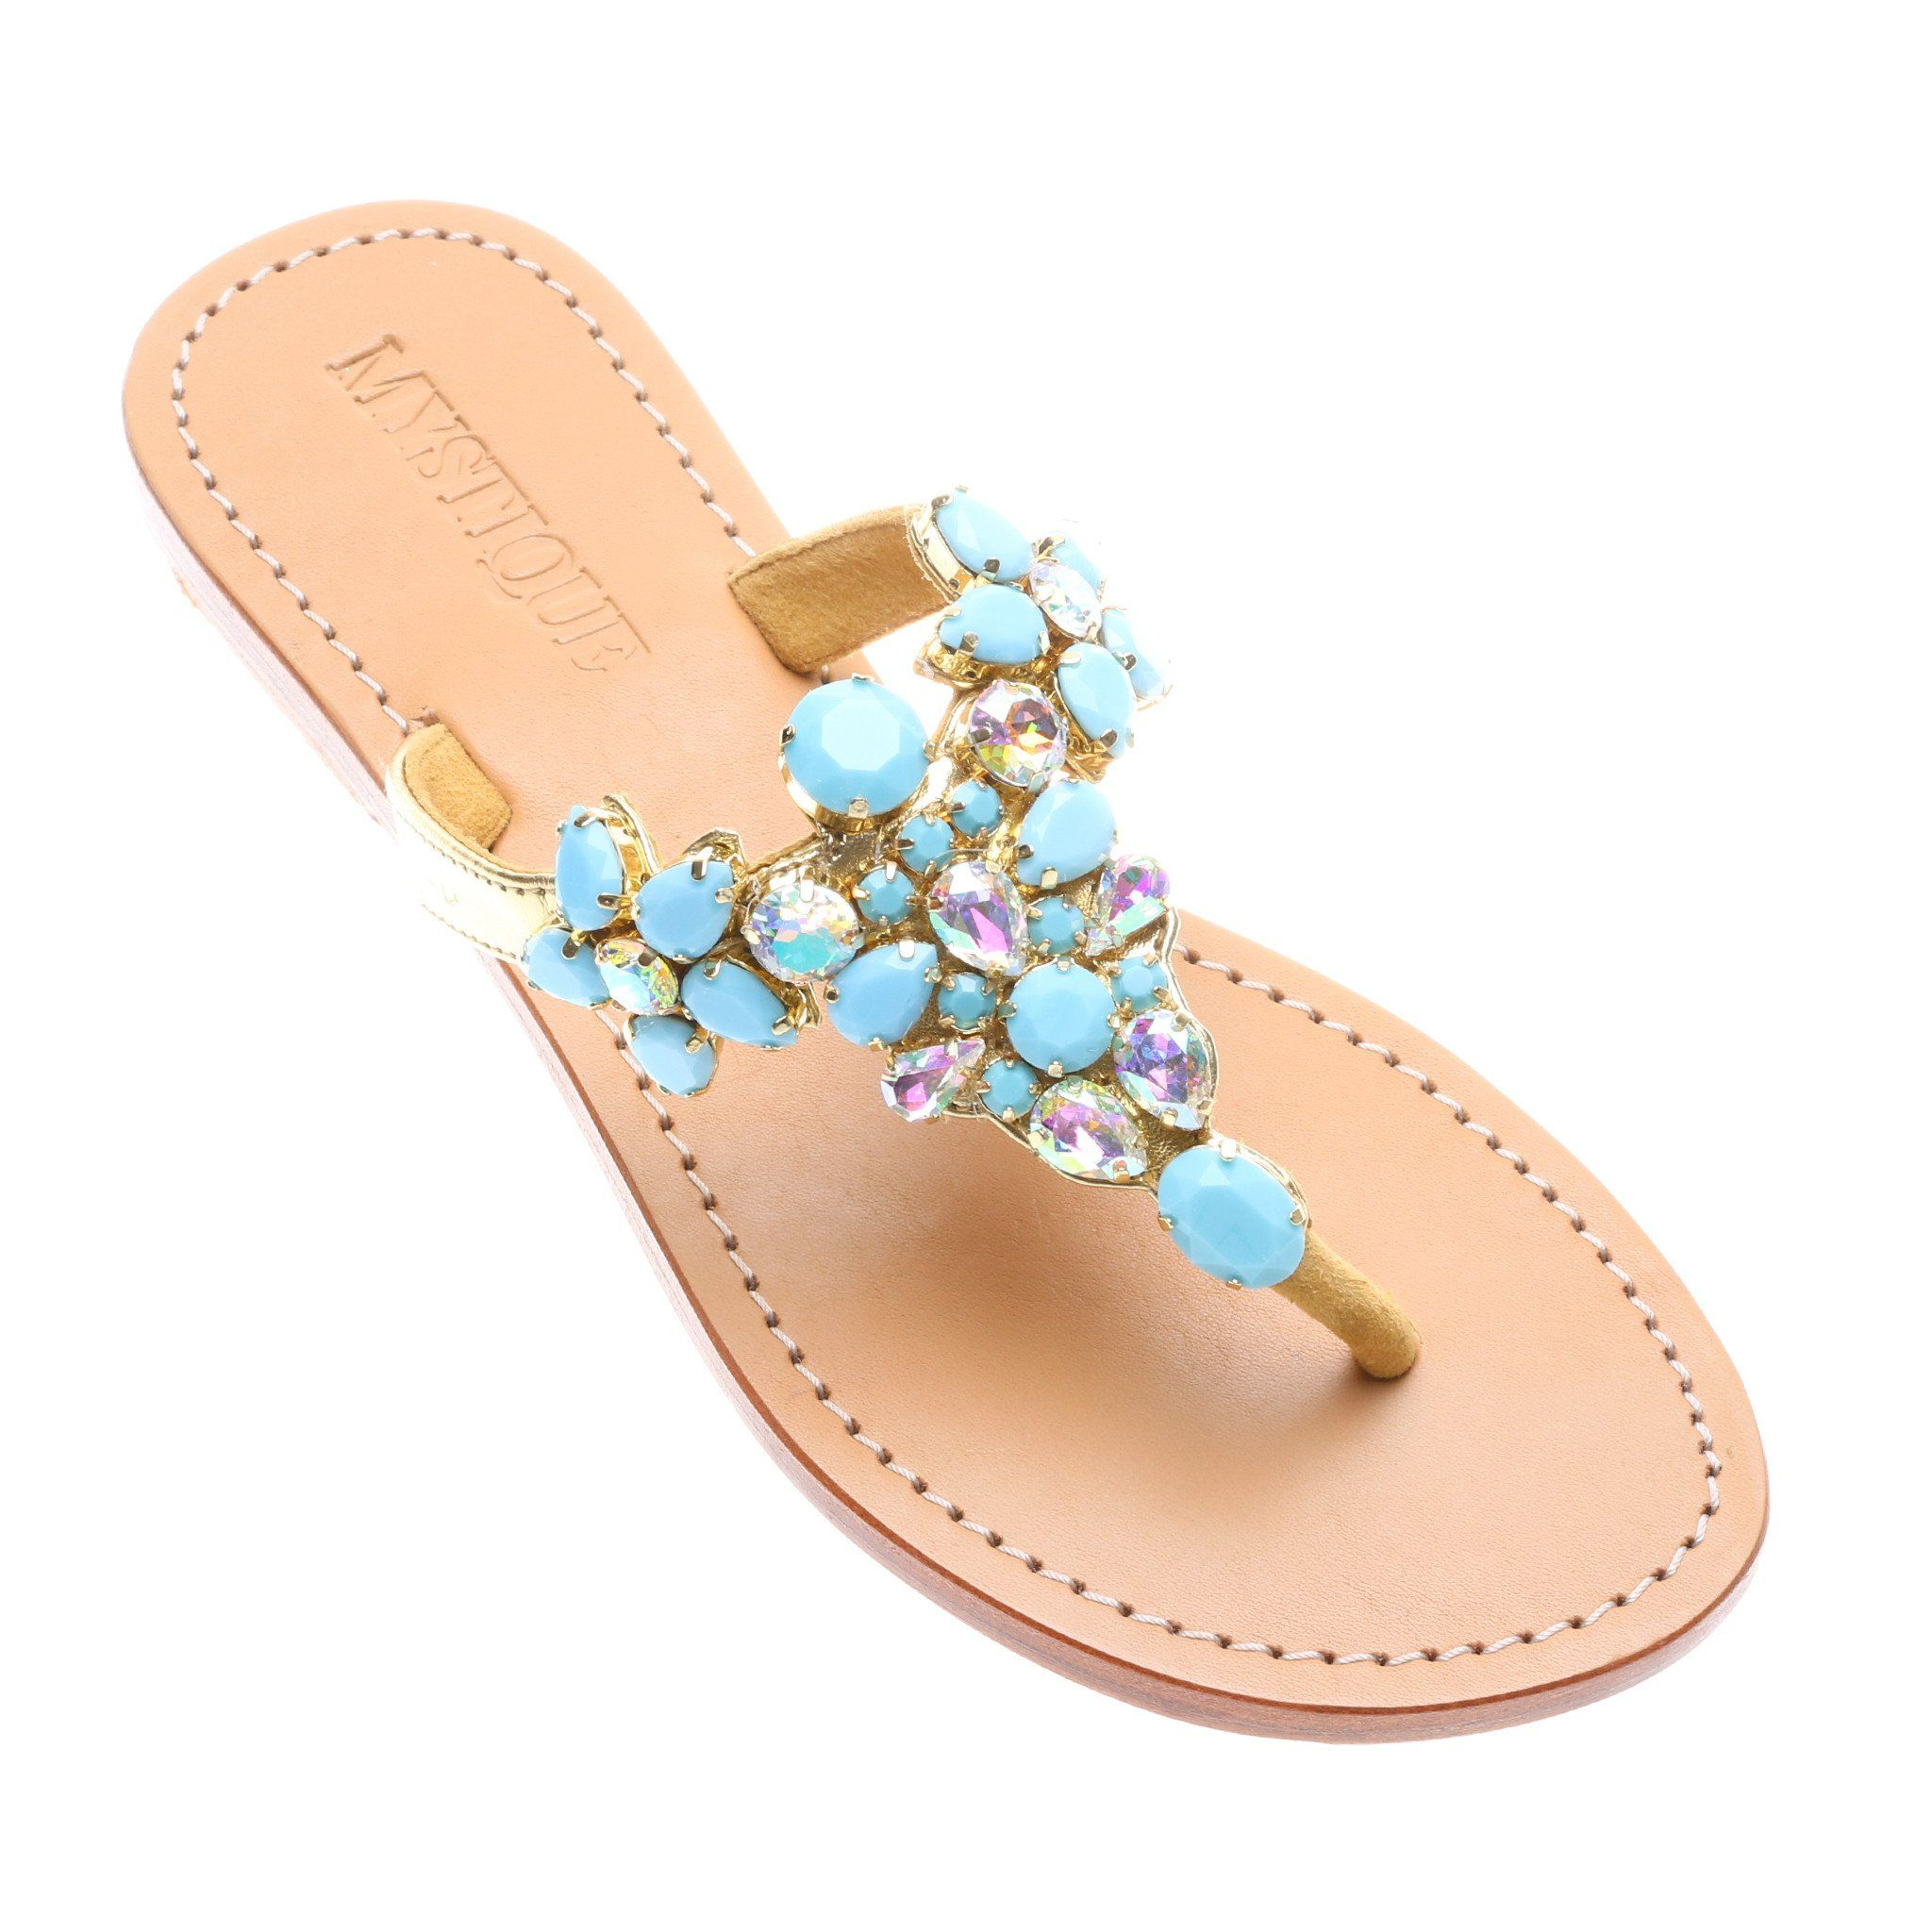 46c9fe16ee9c Marion- Women s Gold Turquoise Jeweled Thong Sandal